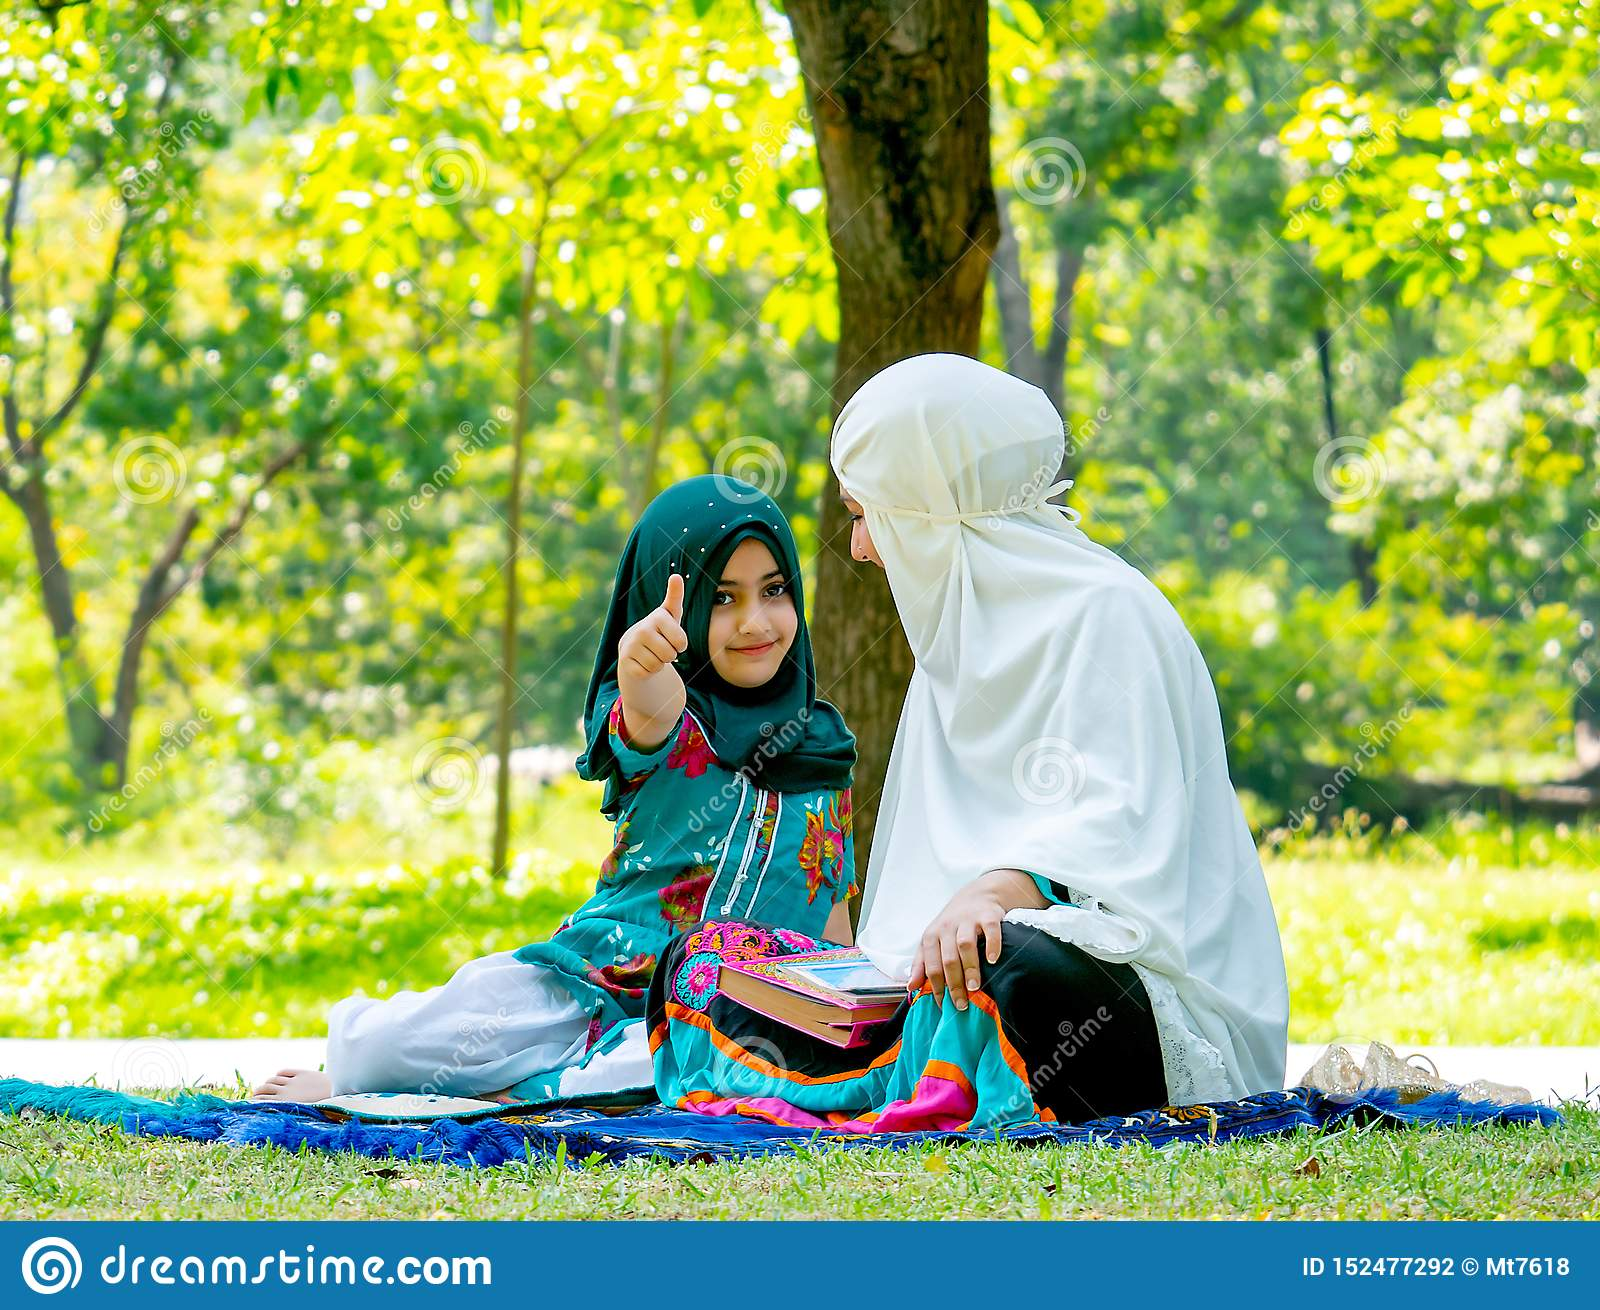 Muslim woman look at her child and girl show thumps up to the camera during reading some books in the garden